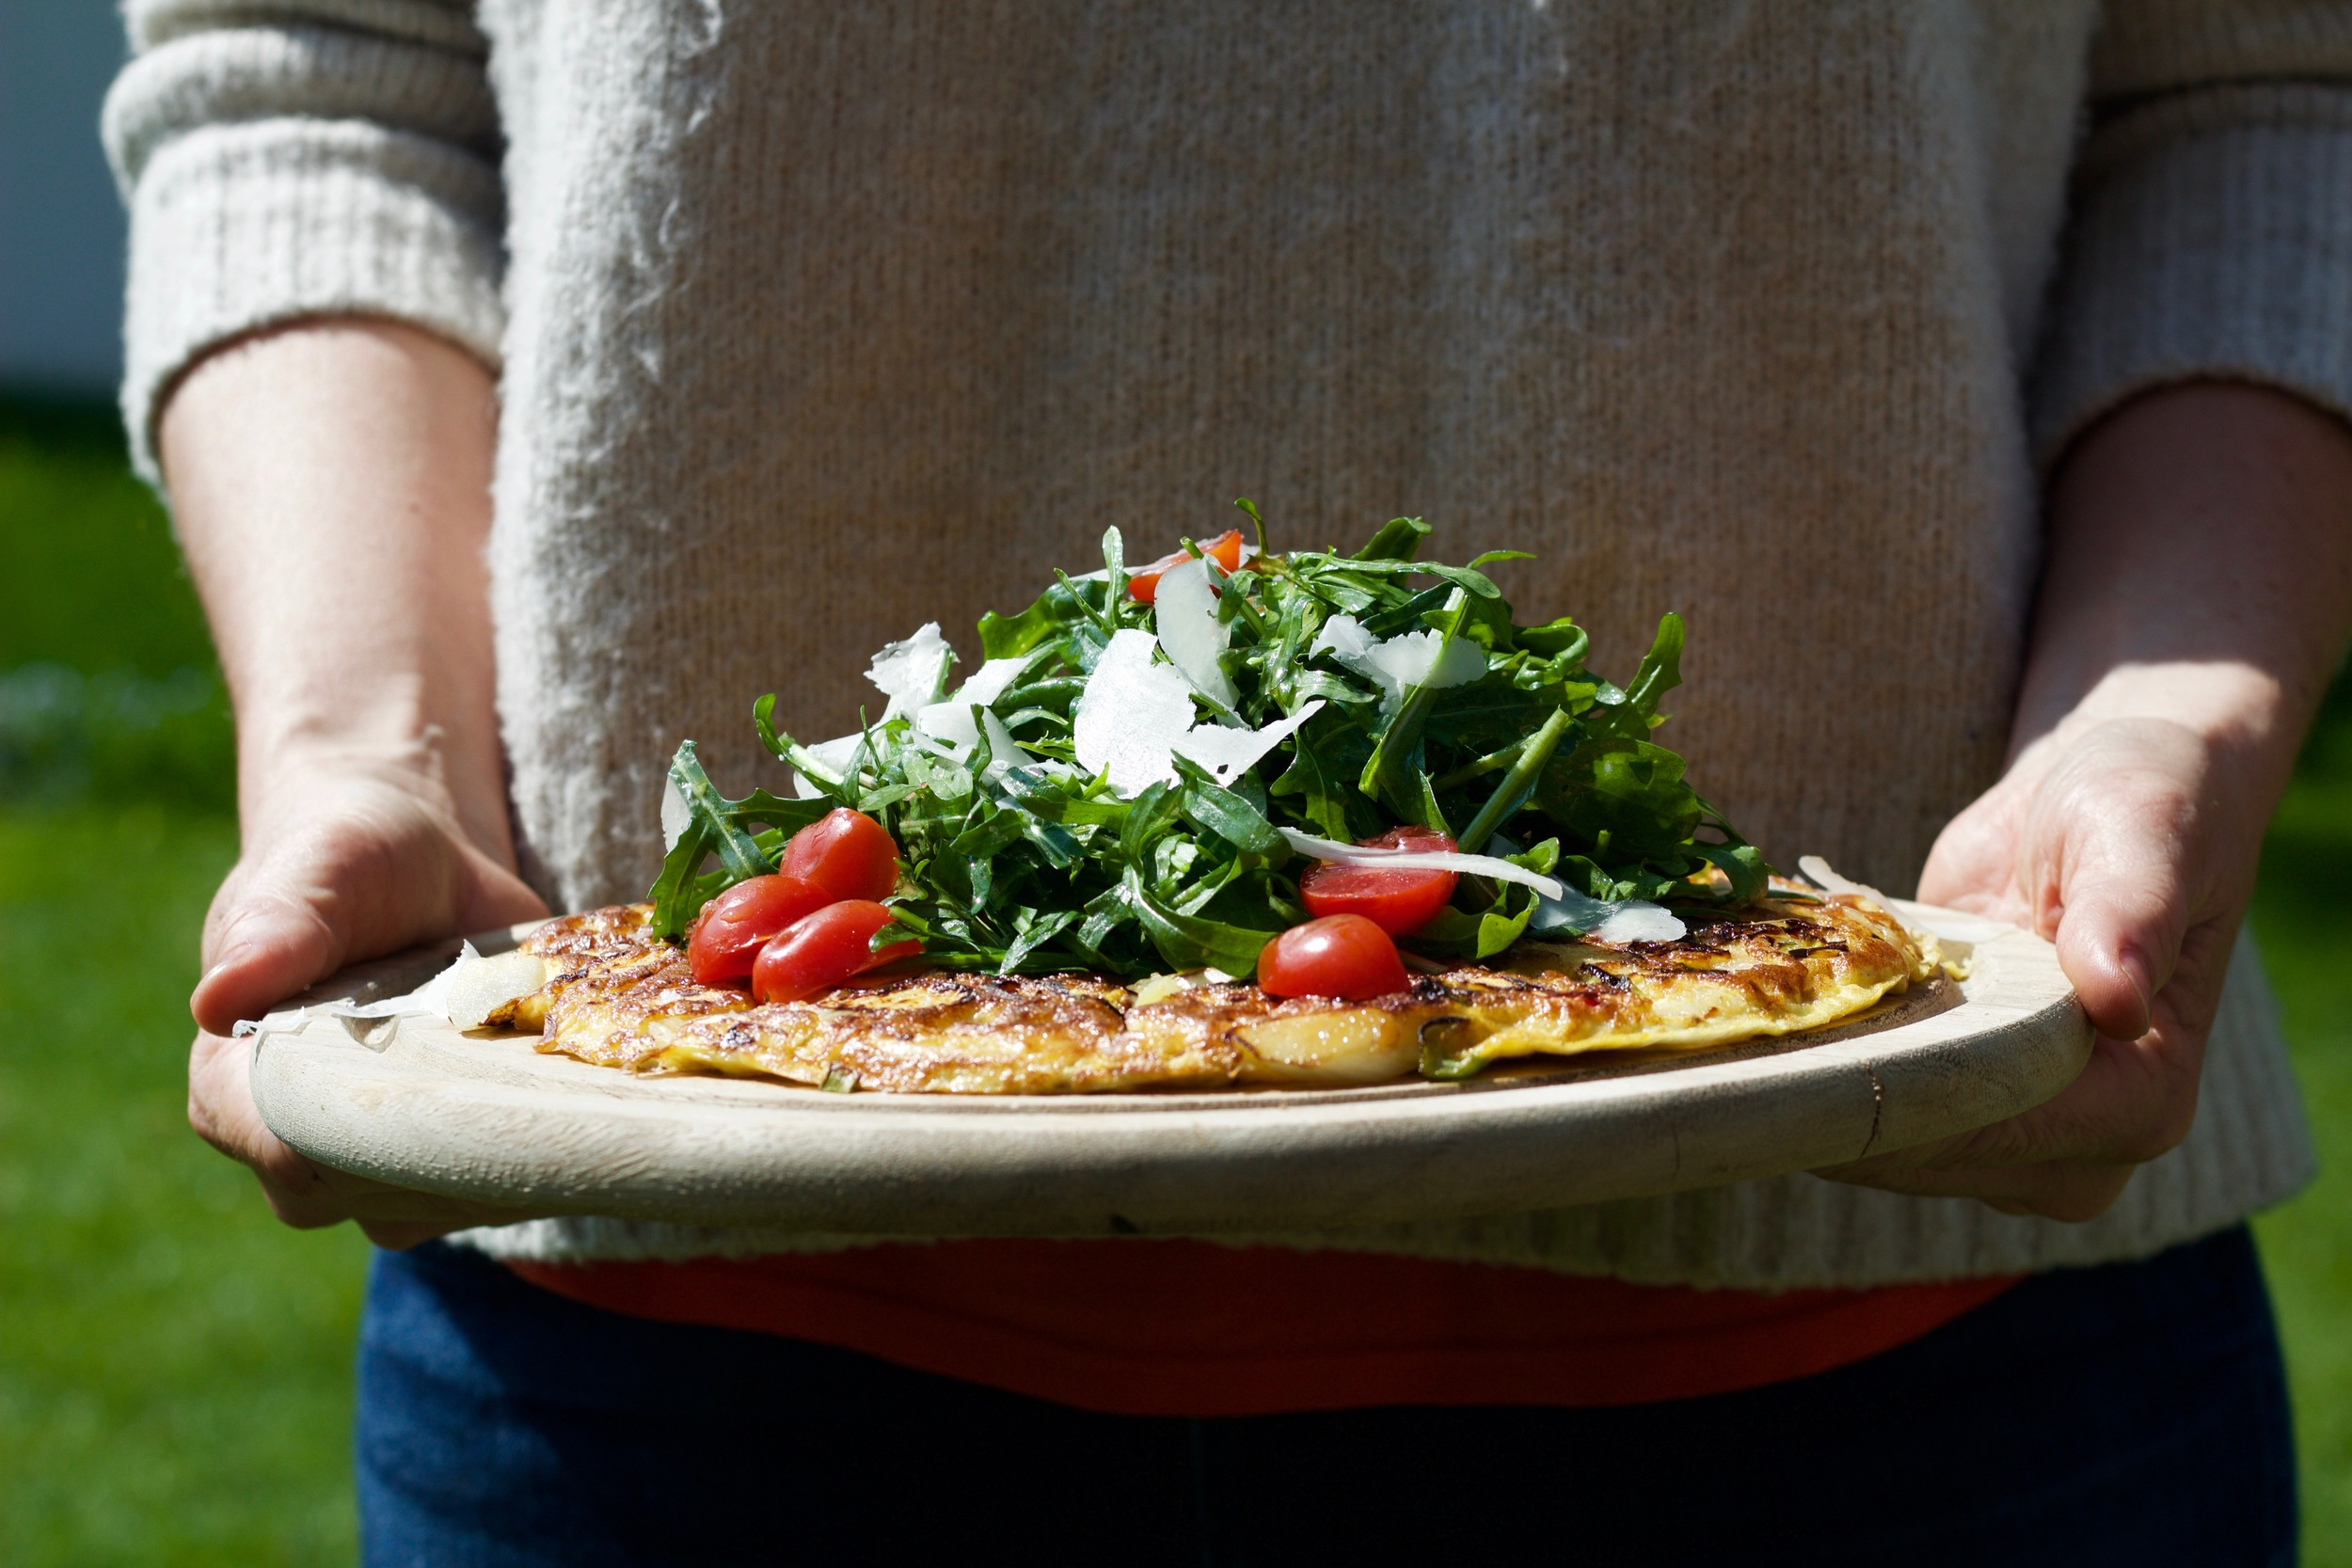 White Asparagus fritata with arugula salad